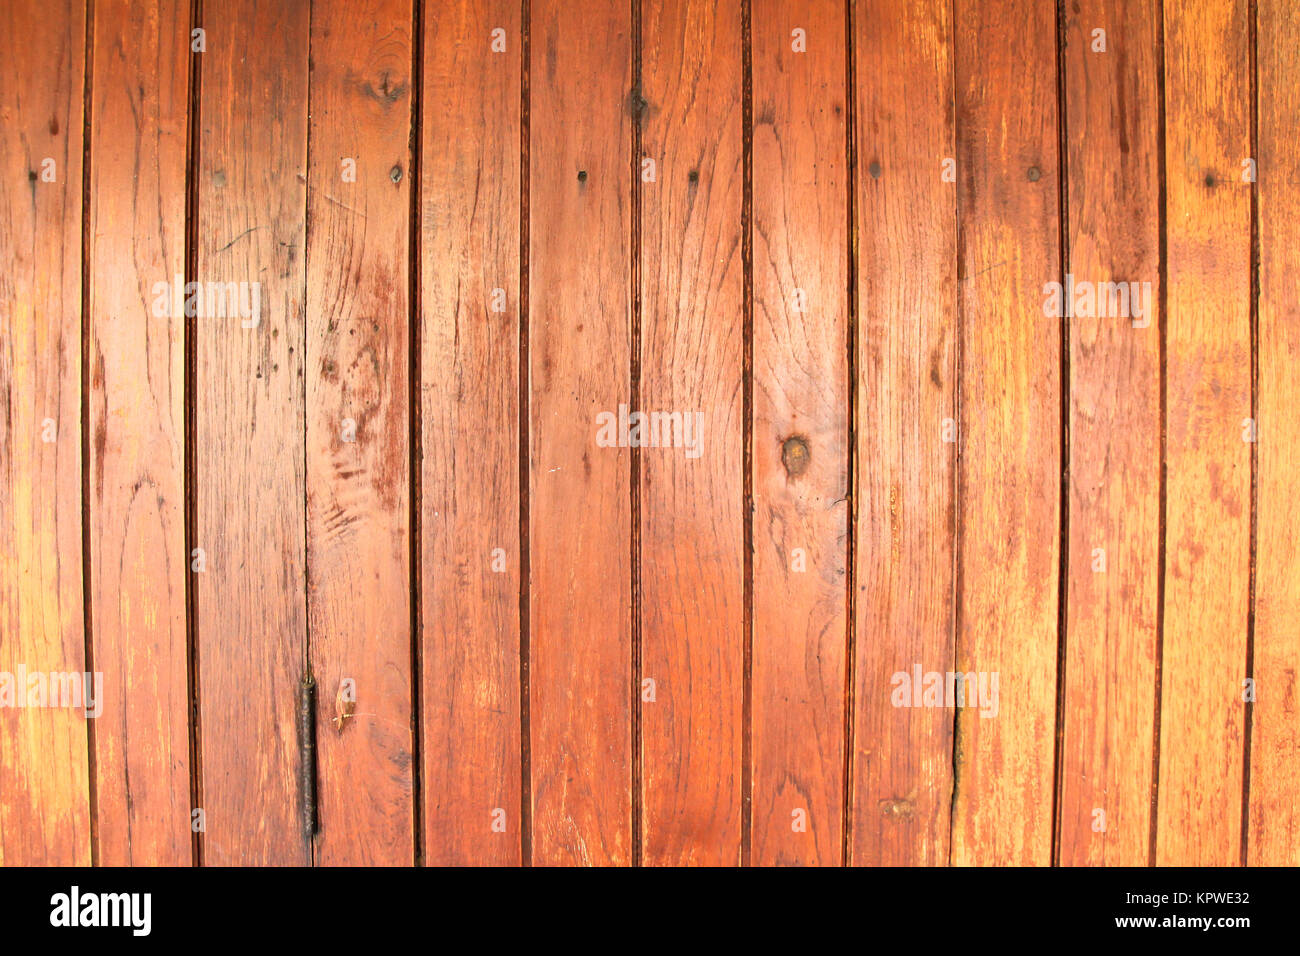 Old wooden wall, background photo texture - Stock Image